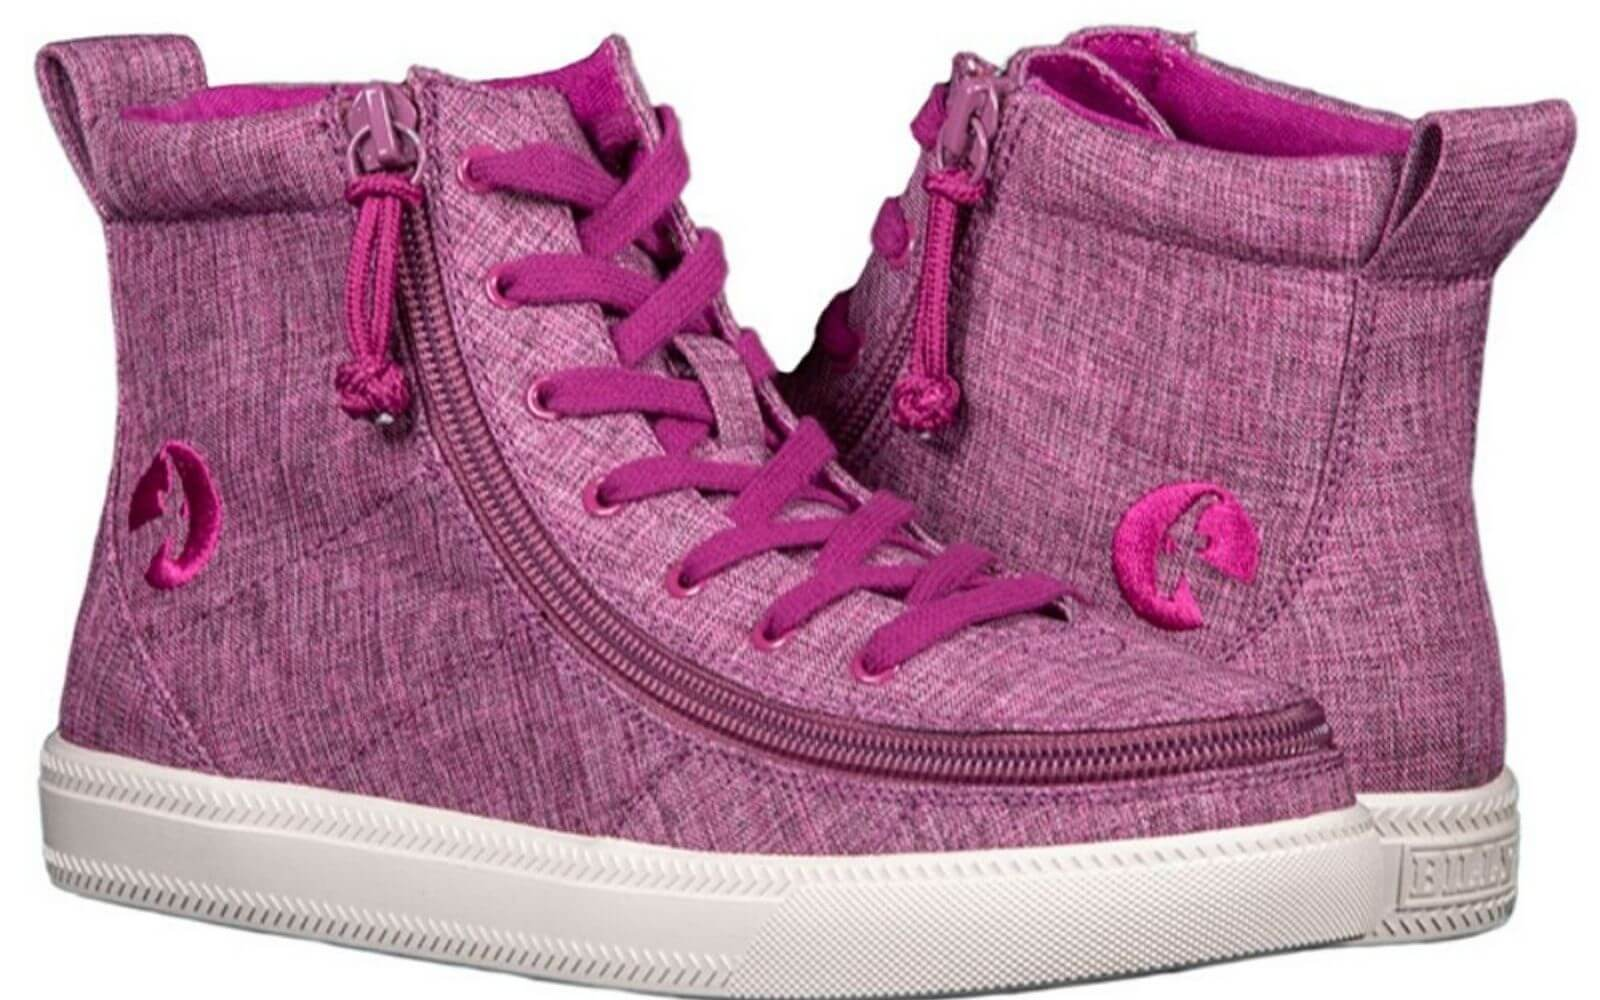 billy_footwear_shoes_for_women_with_special_needs_adults